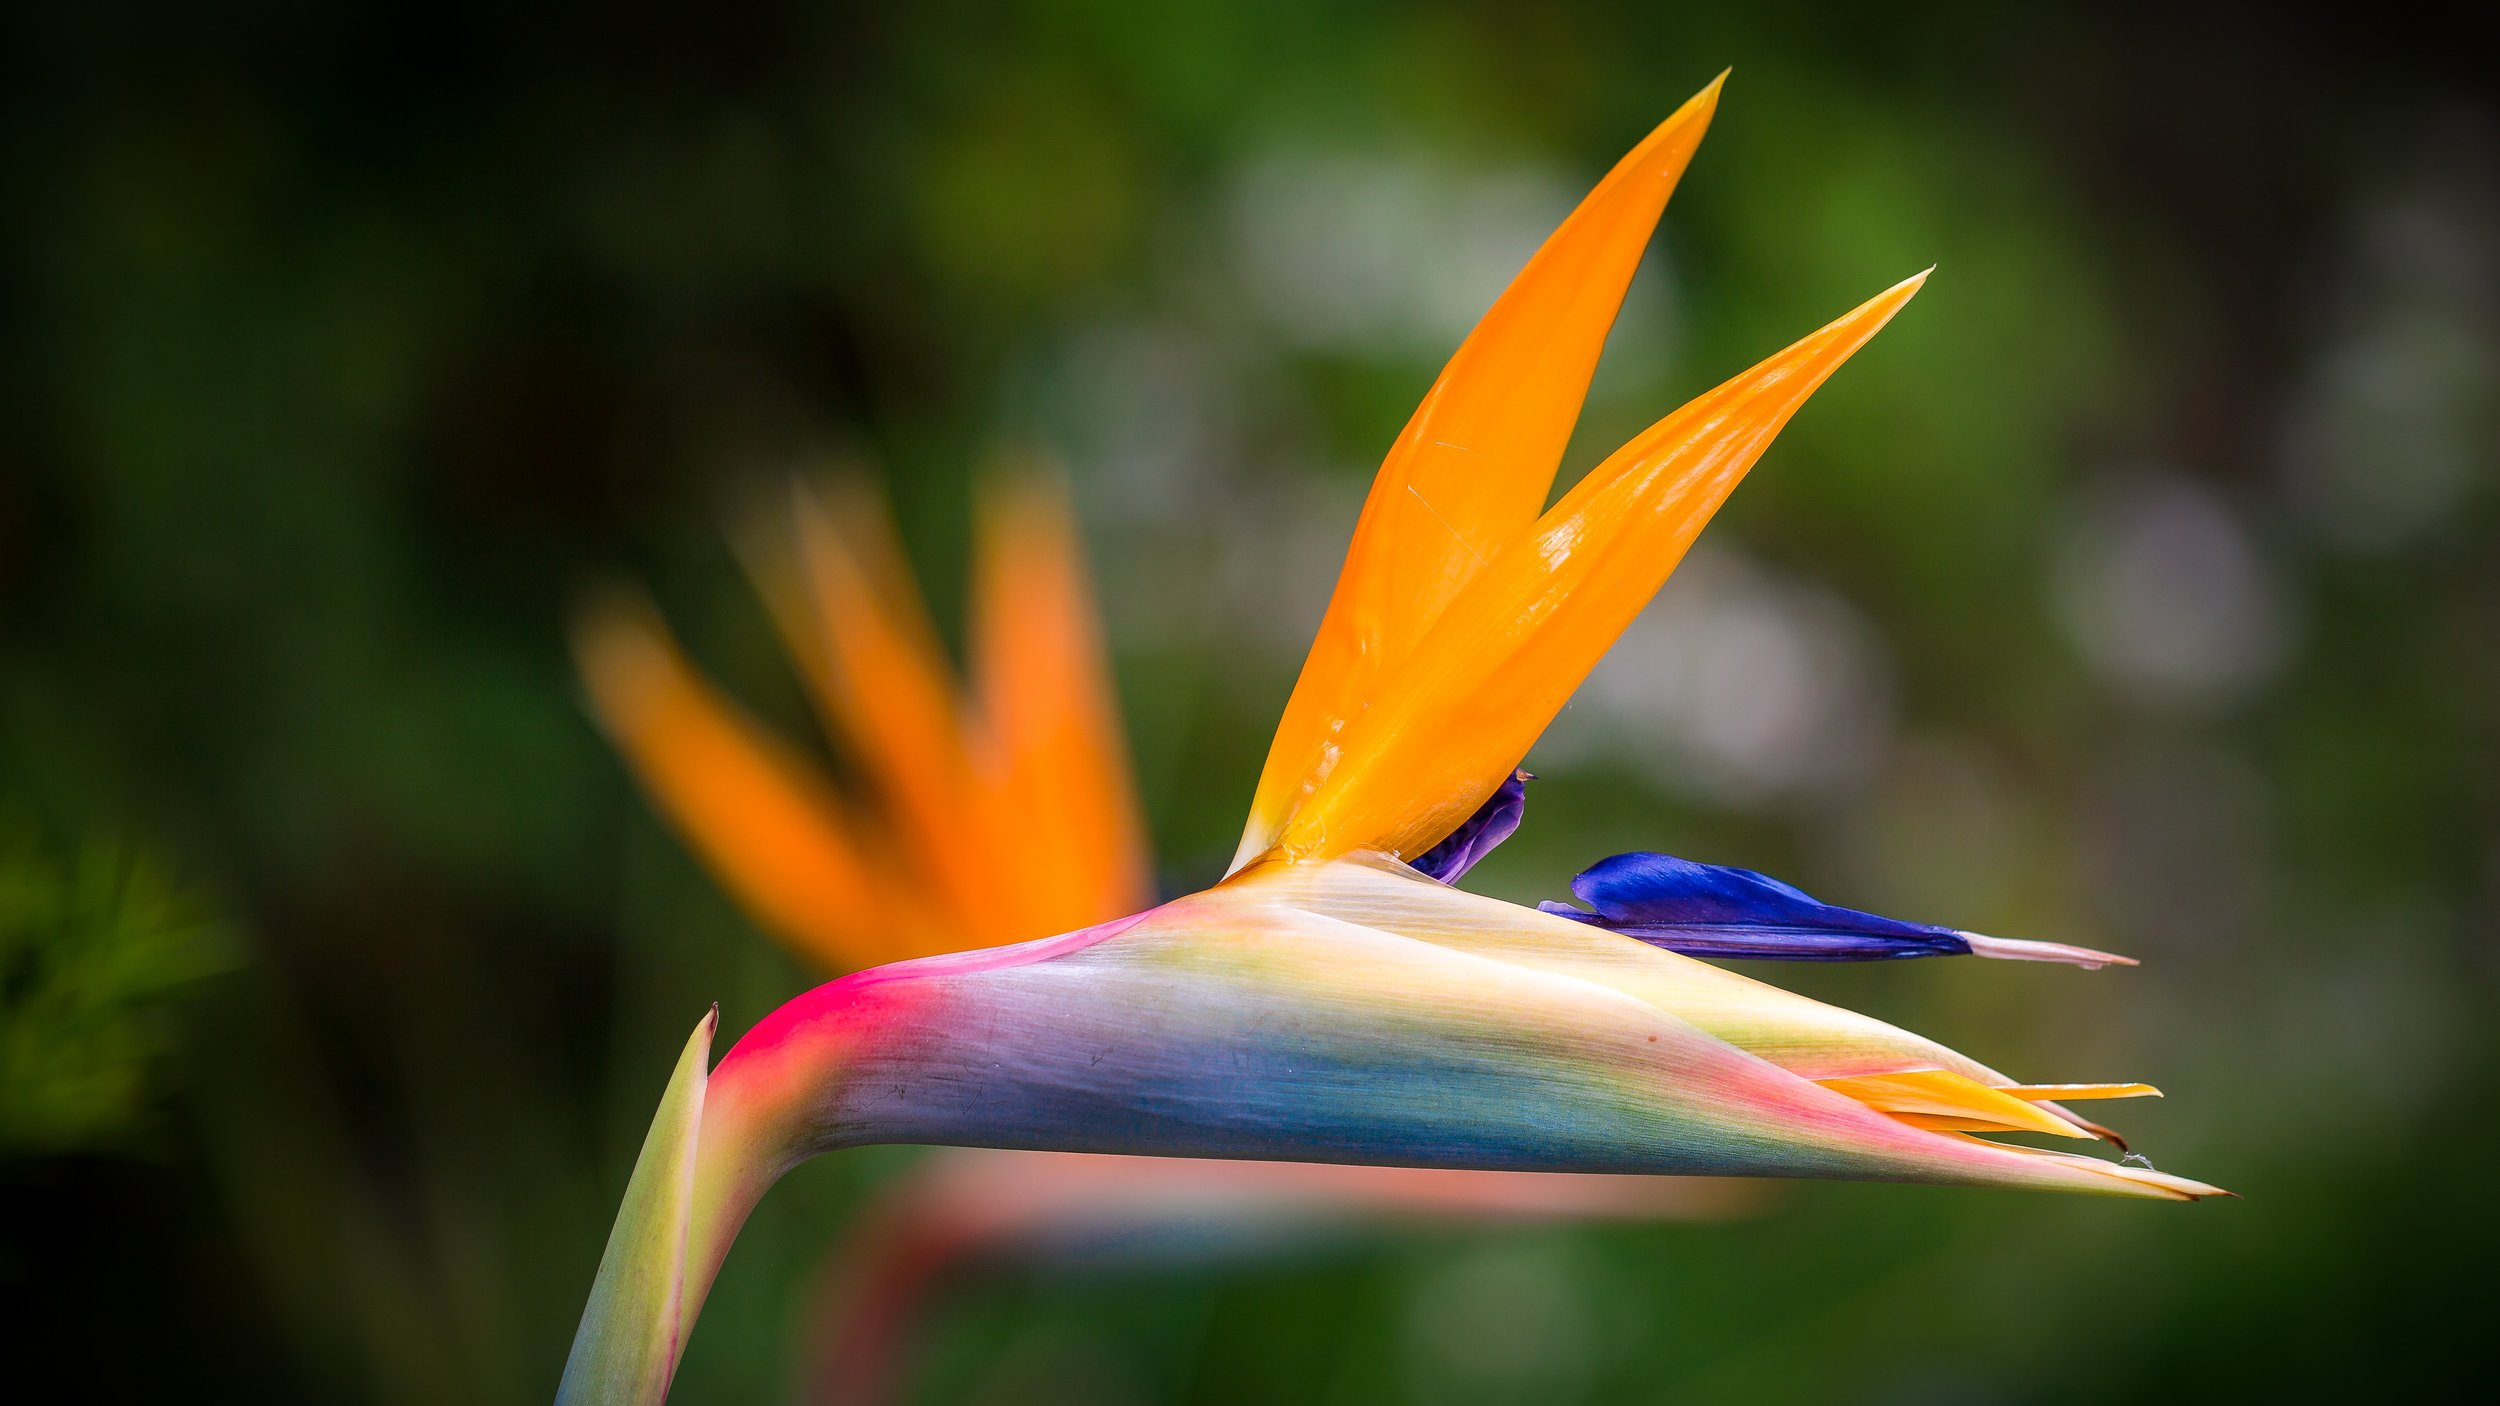 beautiful-beauty-birds-of-paradise-flower-1046490.jpg